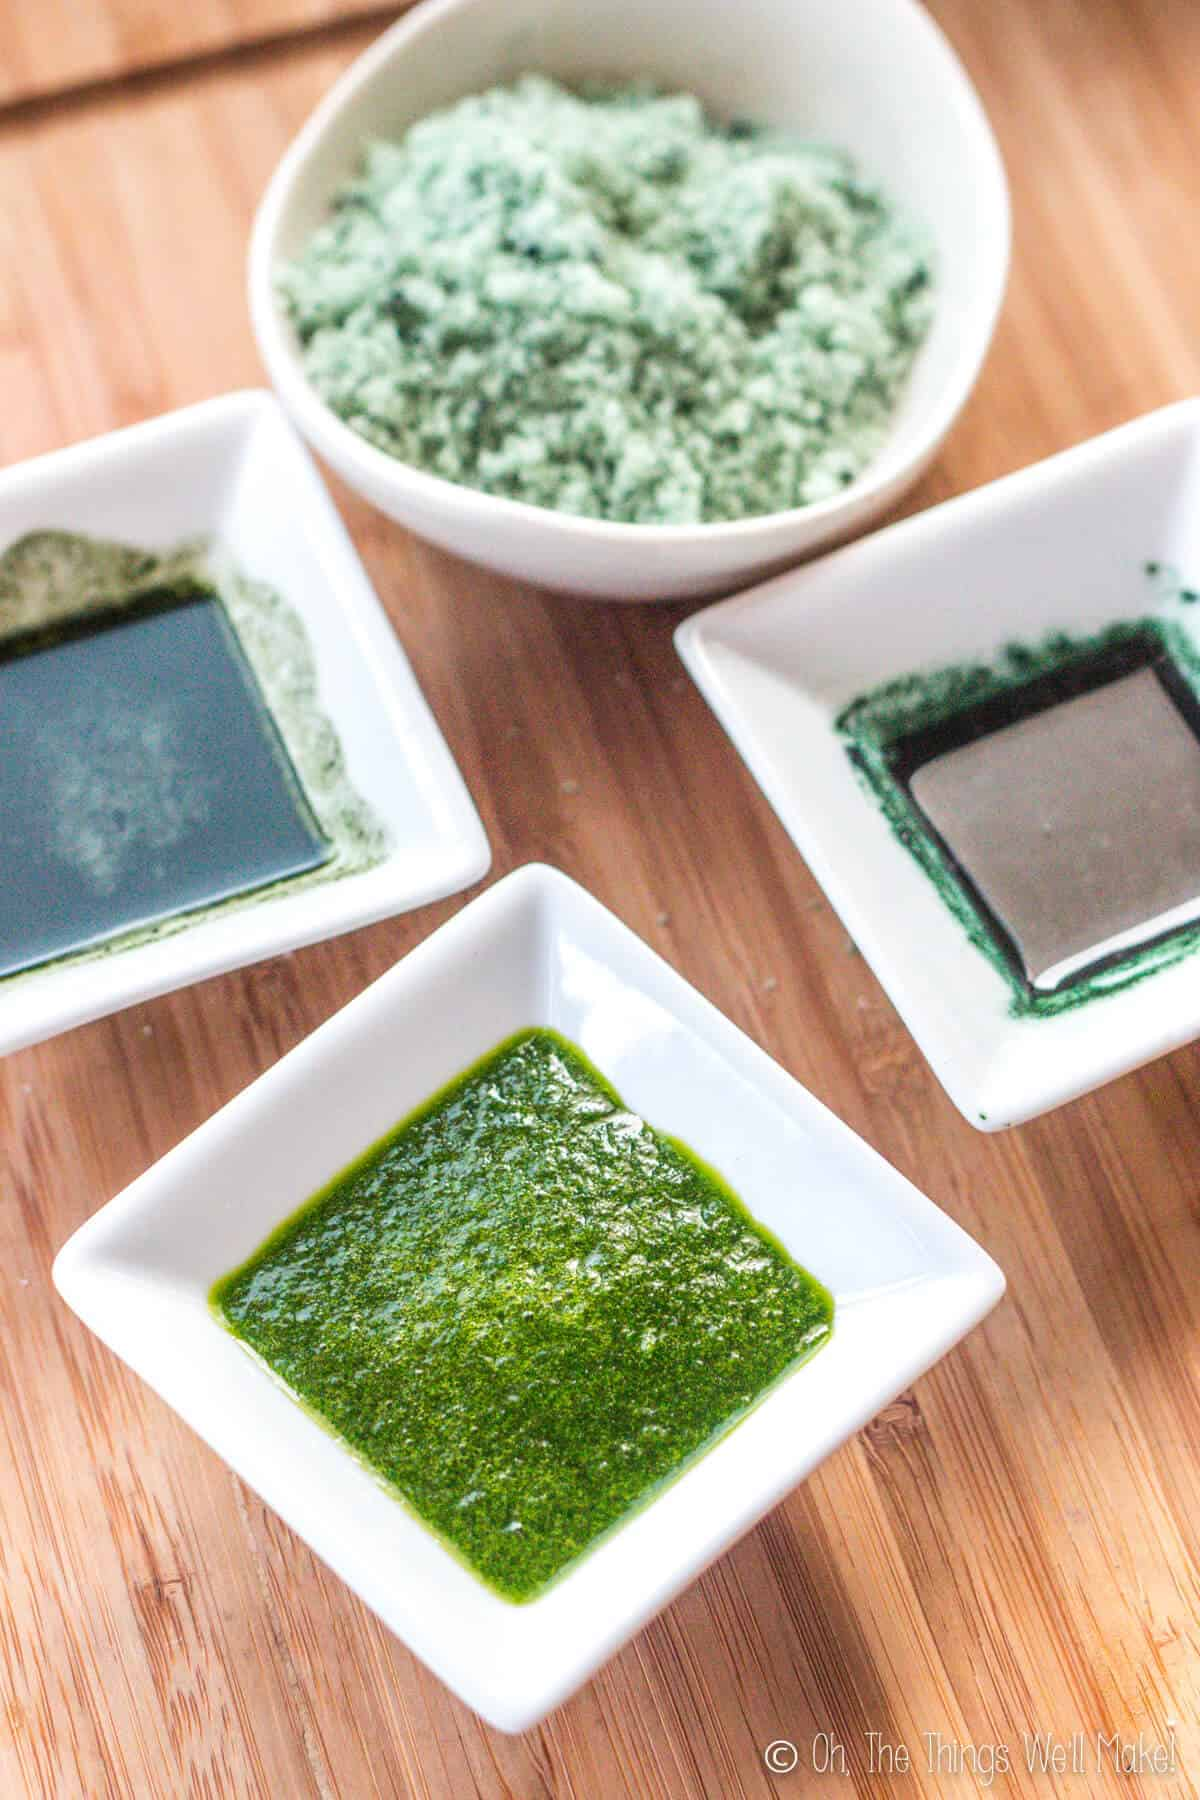 Overhead view of 3 small bowls filled with green colorants made from spinach, chlorella, and spirulina in front of a bowl of sugar tinted green with the spirulina coloring